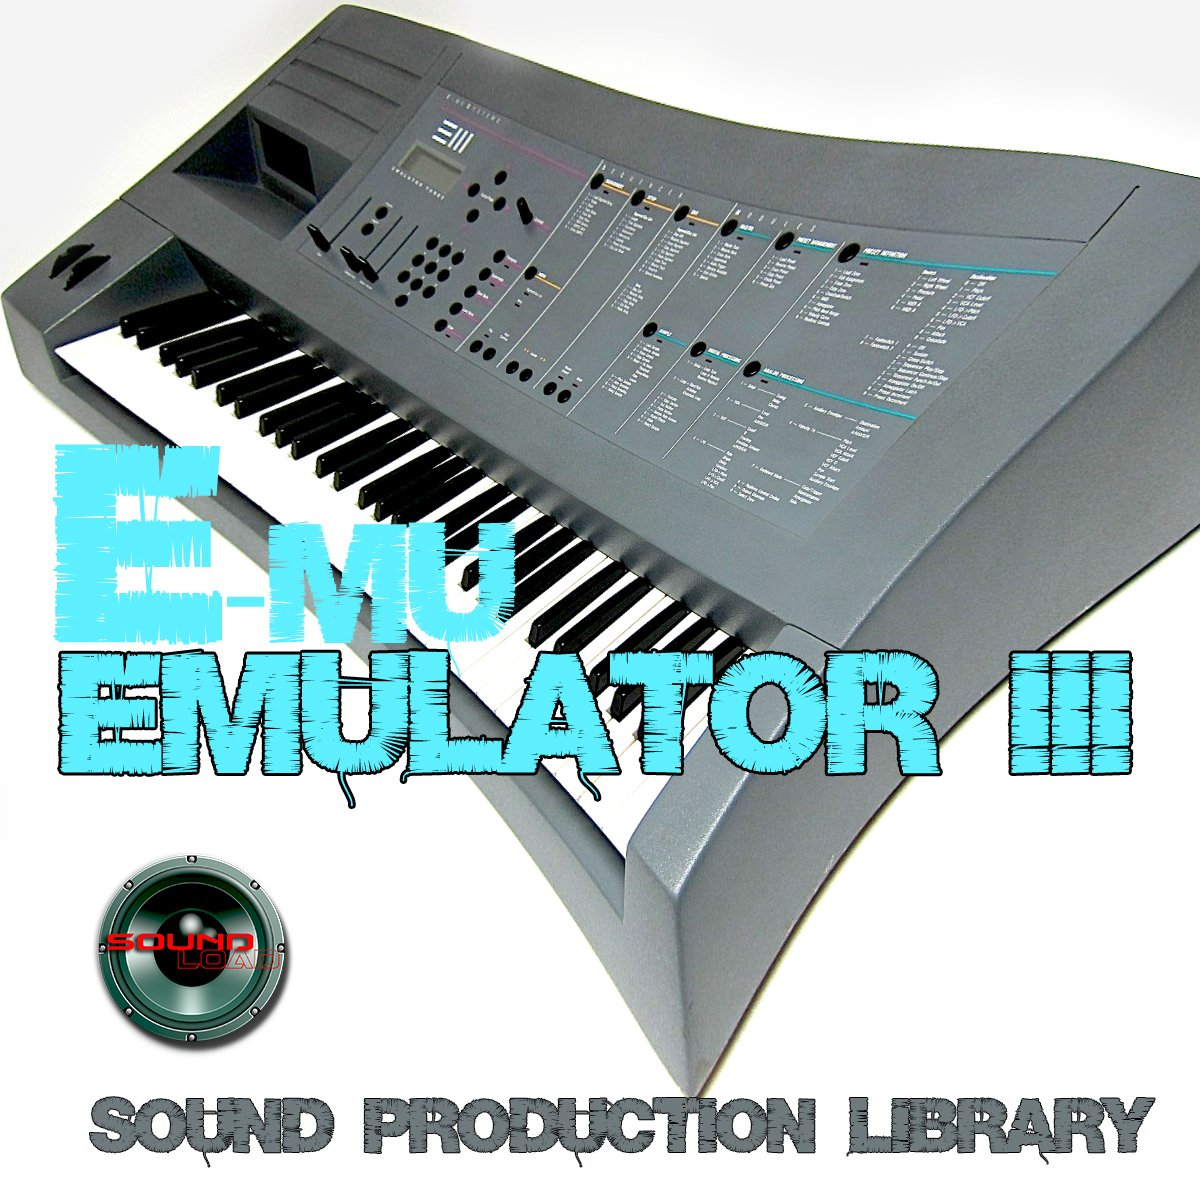 E-mu Emulator 3 - The KING of analog sounds - Large unique original 24bit WAVE/Kontakt Multi-Layer Samples Library. FREE USA Continental Shipping on DVD or download; by SoundLoad